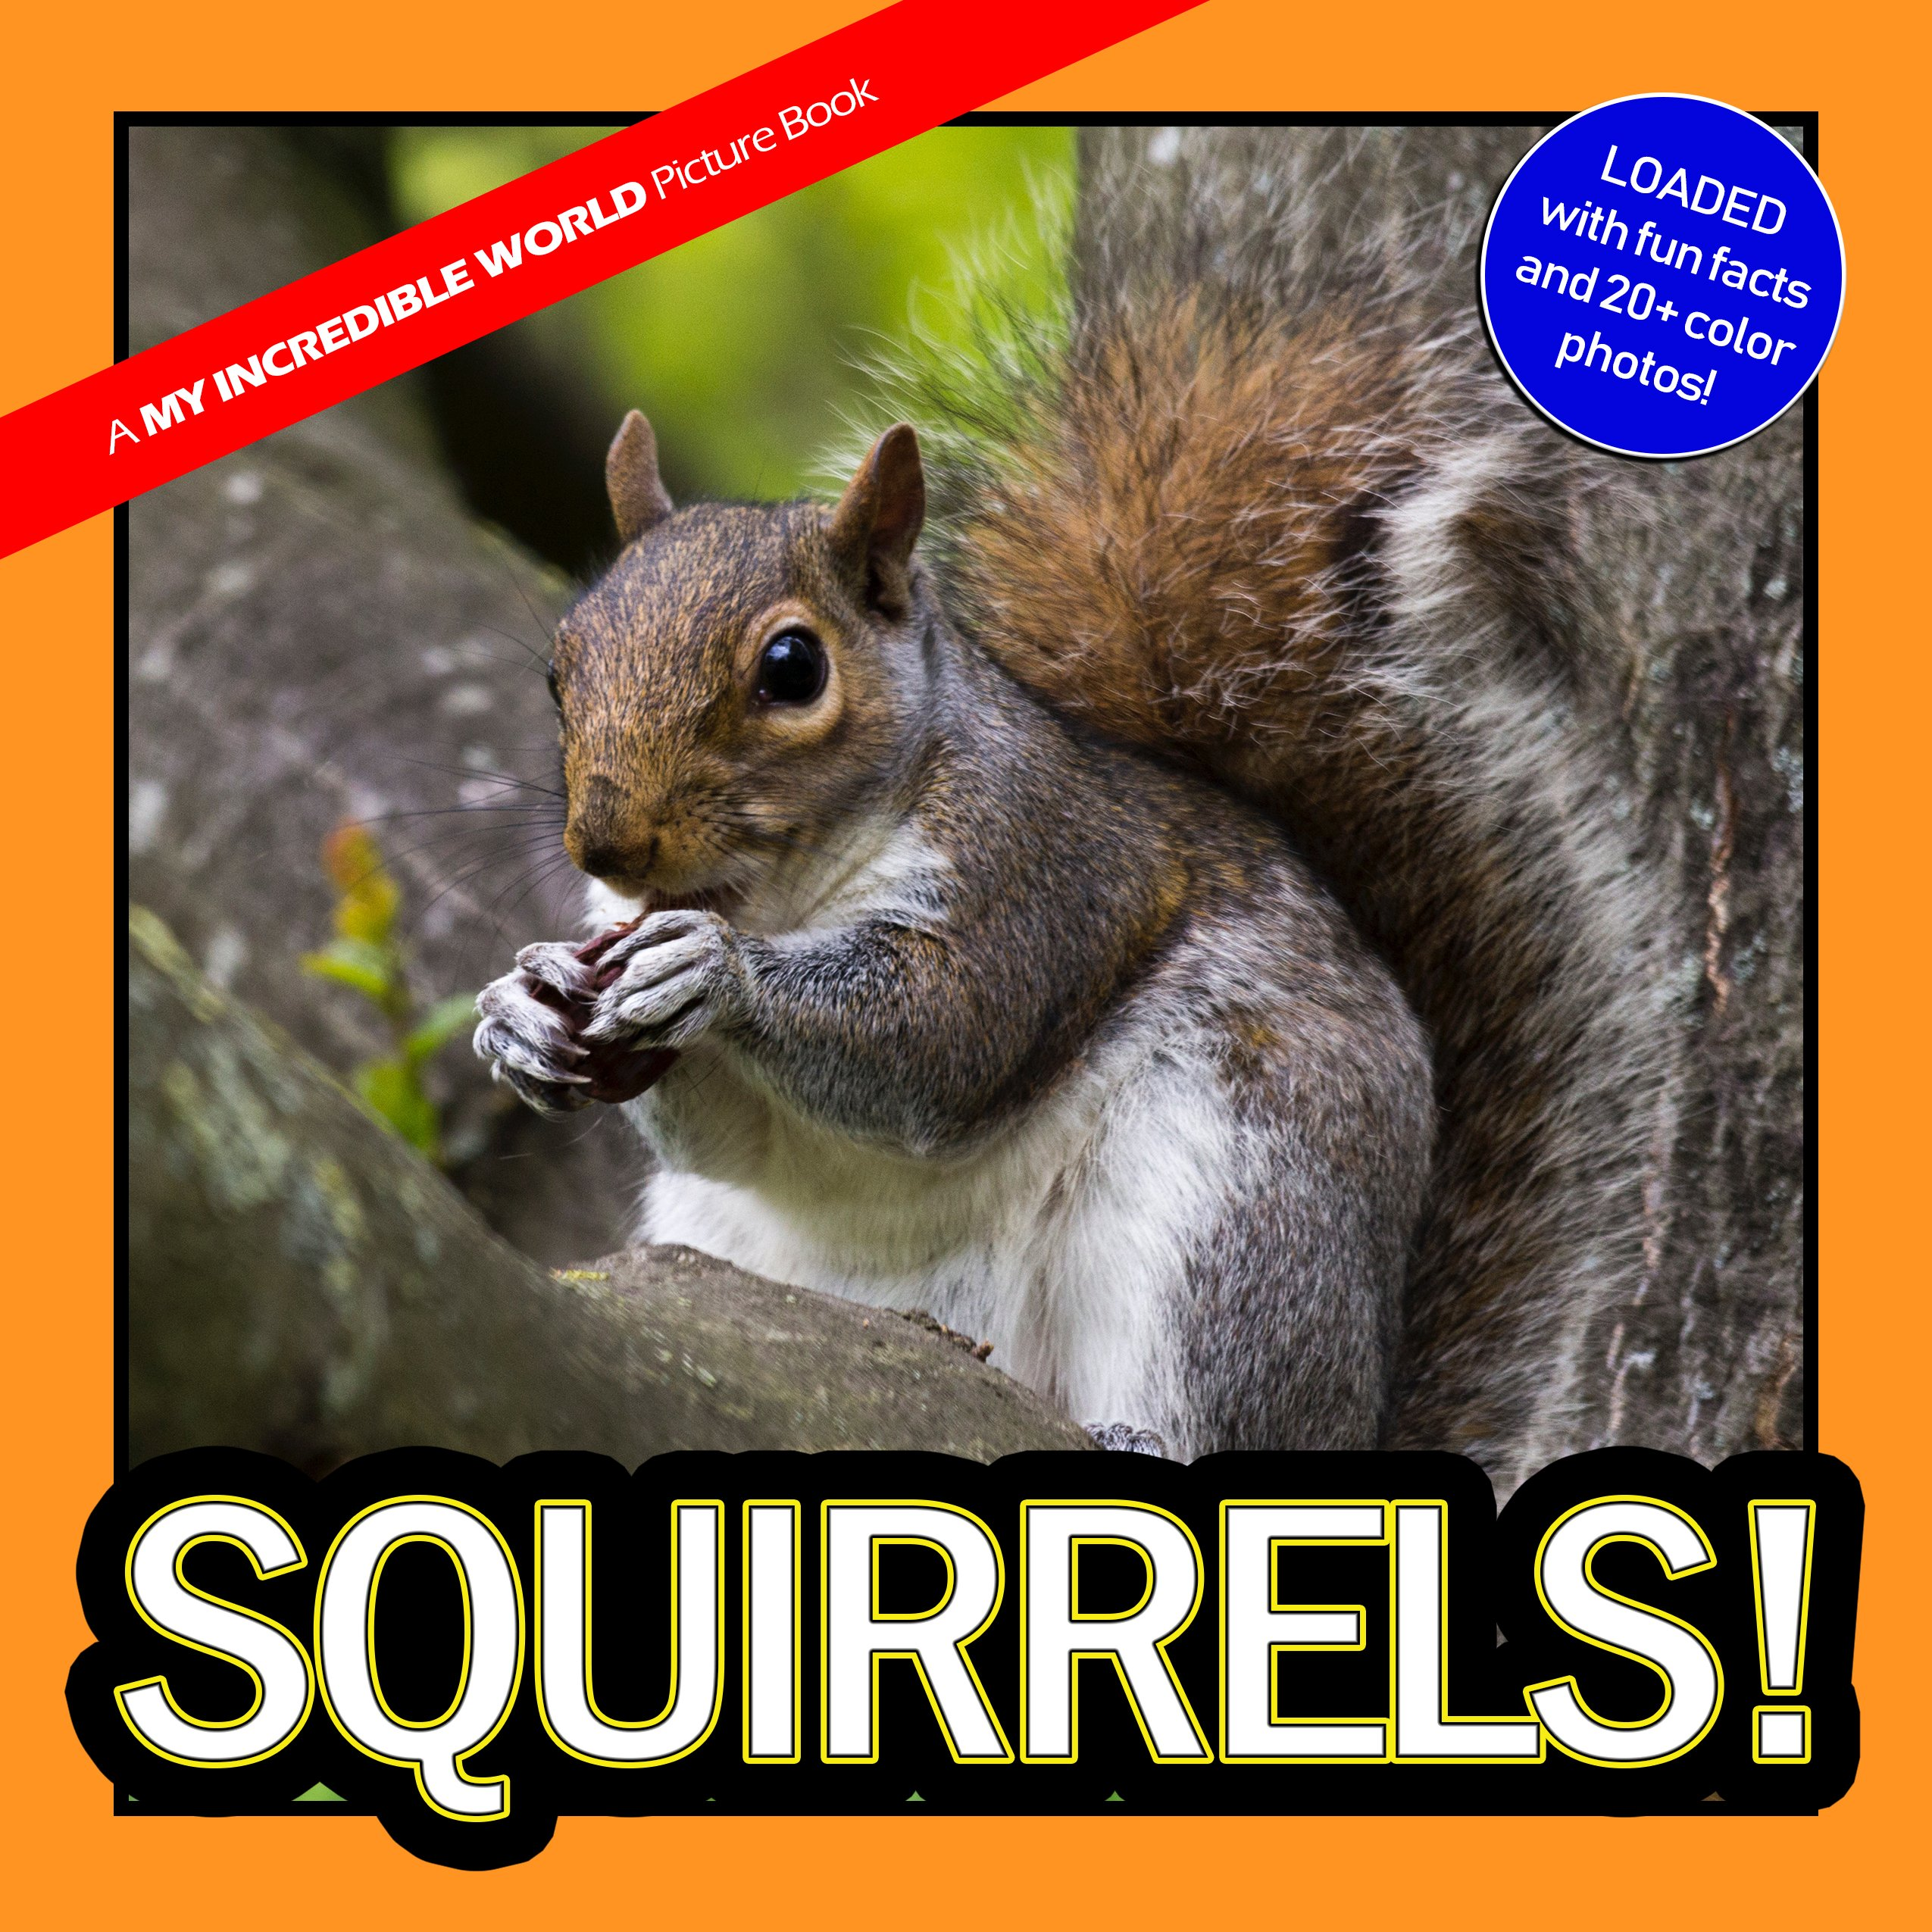 Squirrels!: A My Incredible World Picture Book for Children (English Edition)